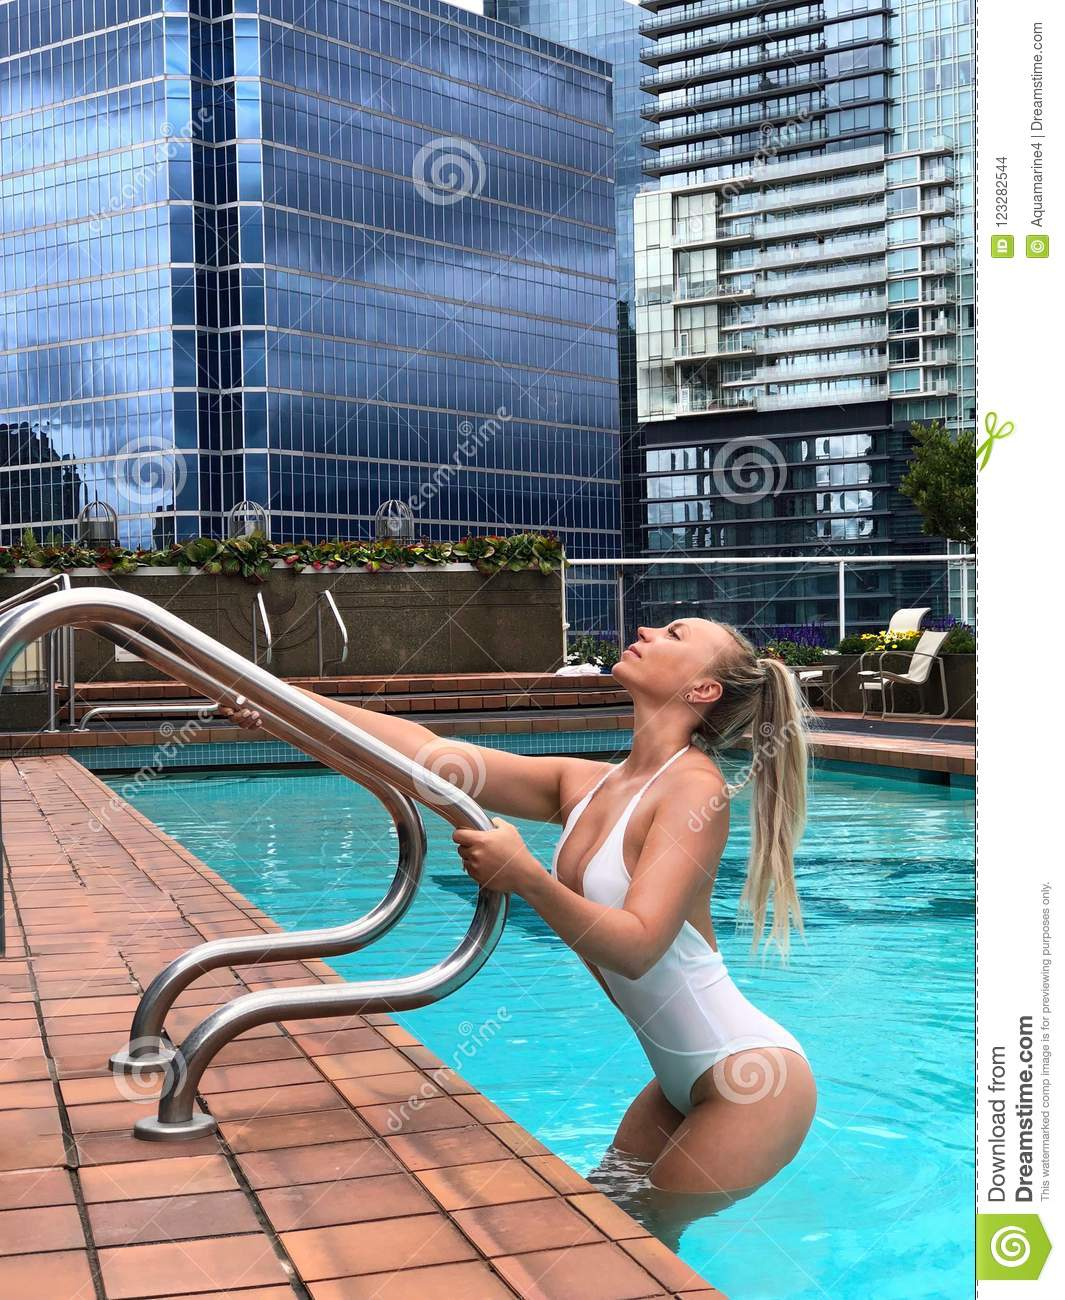 Young beautiful blond woman in swimming pool on the roof top among skyscrapers.